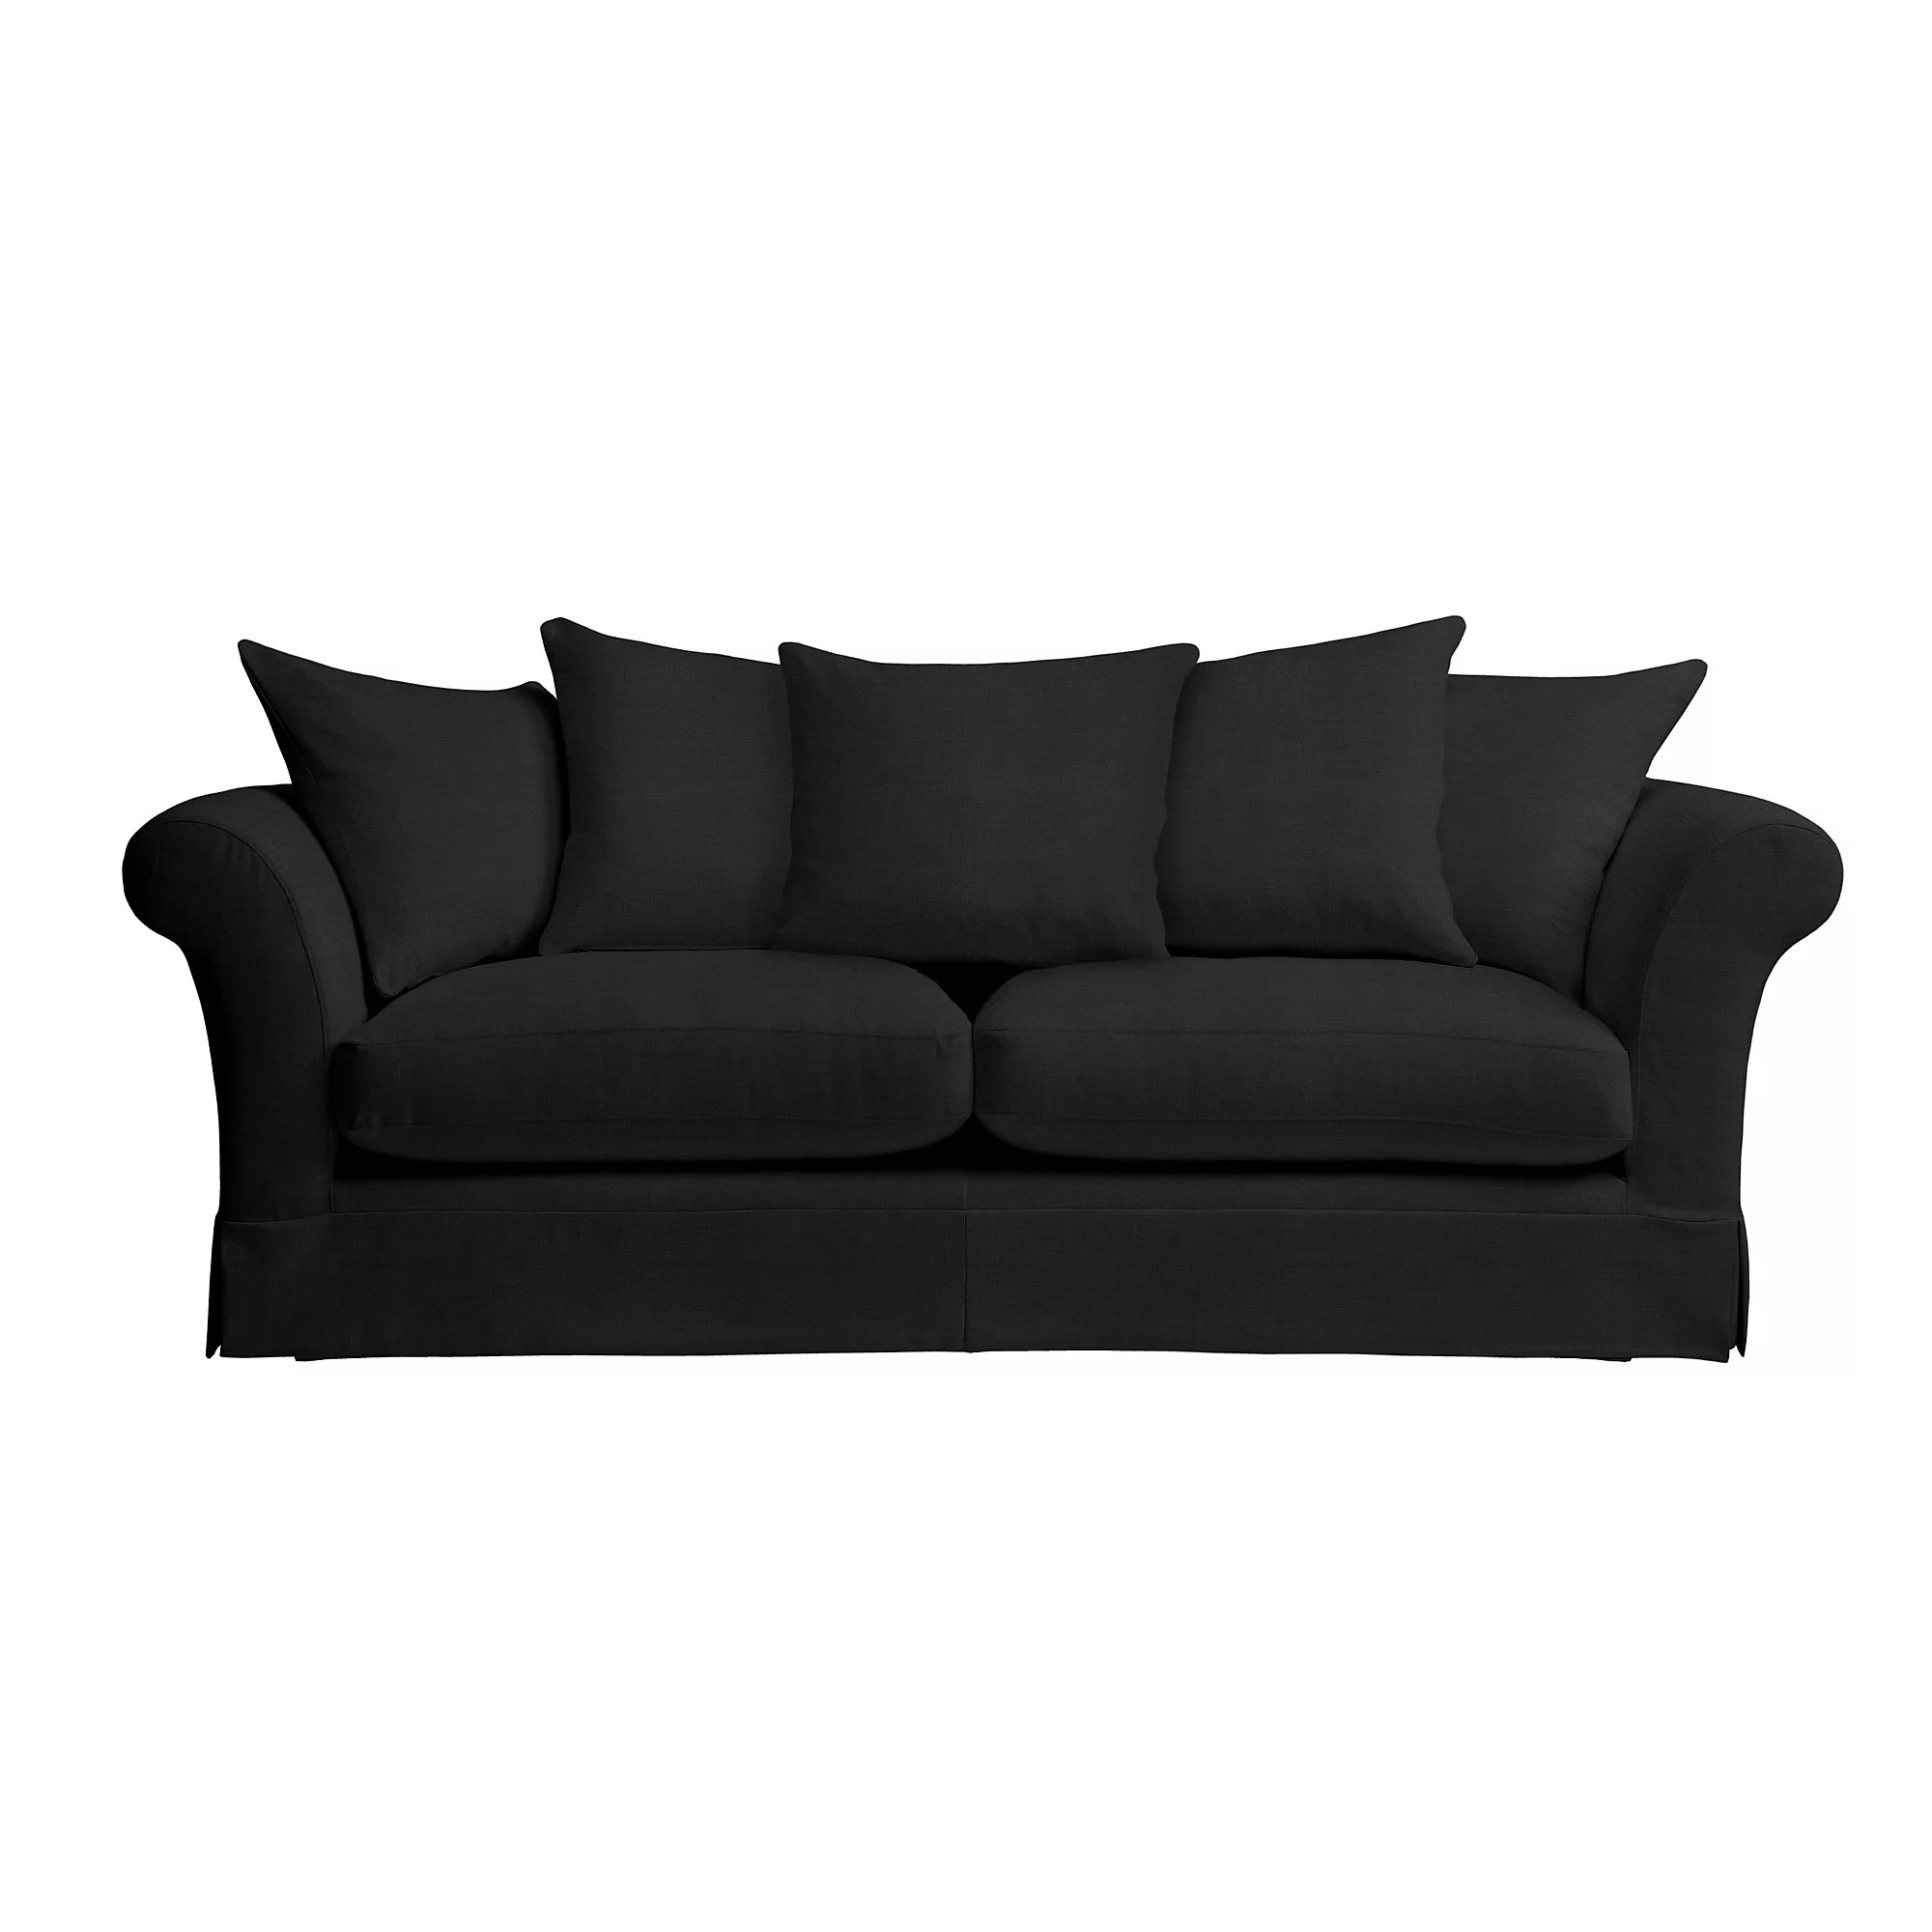 john lewis armchair covers floral fabric chairs black sofa cover shop for cheap products and save online